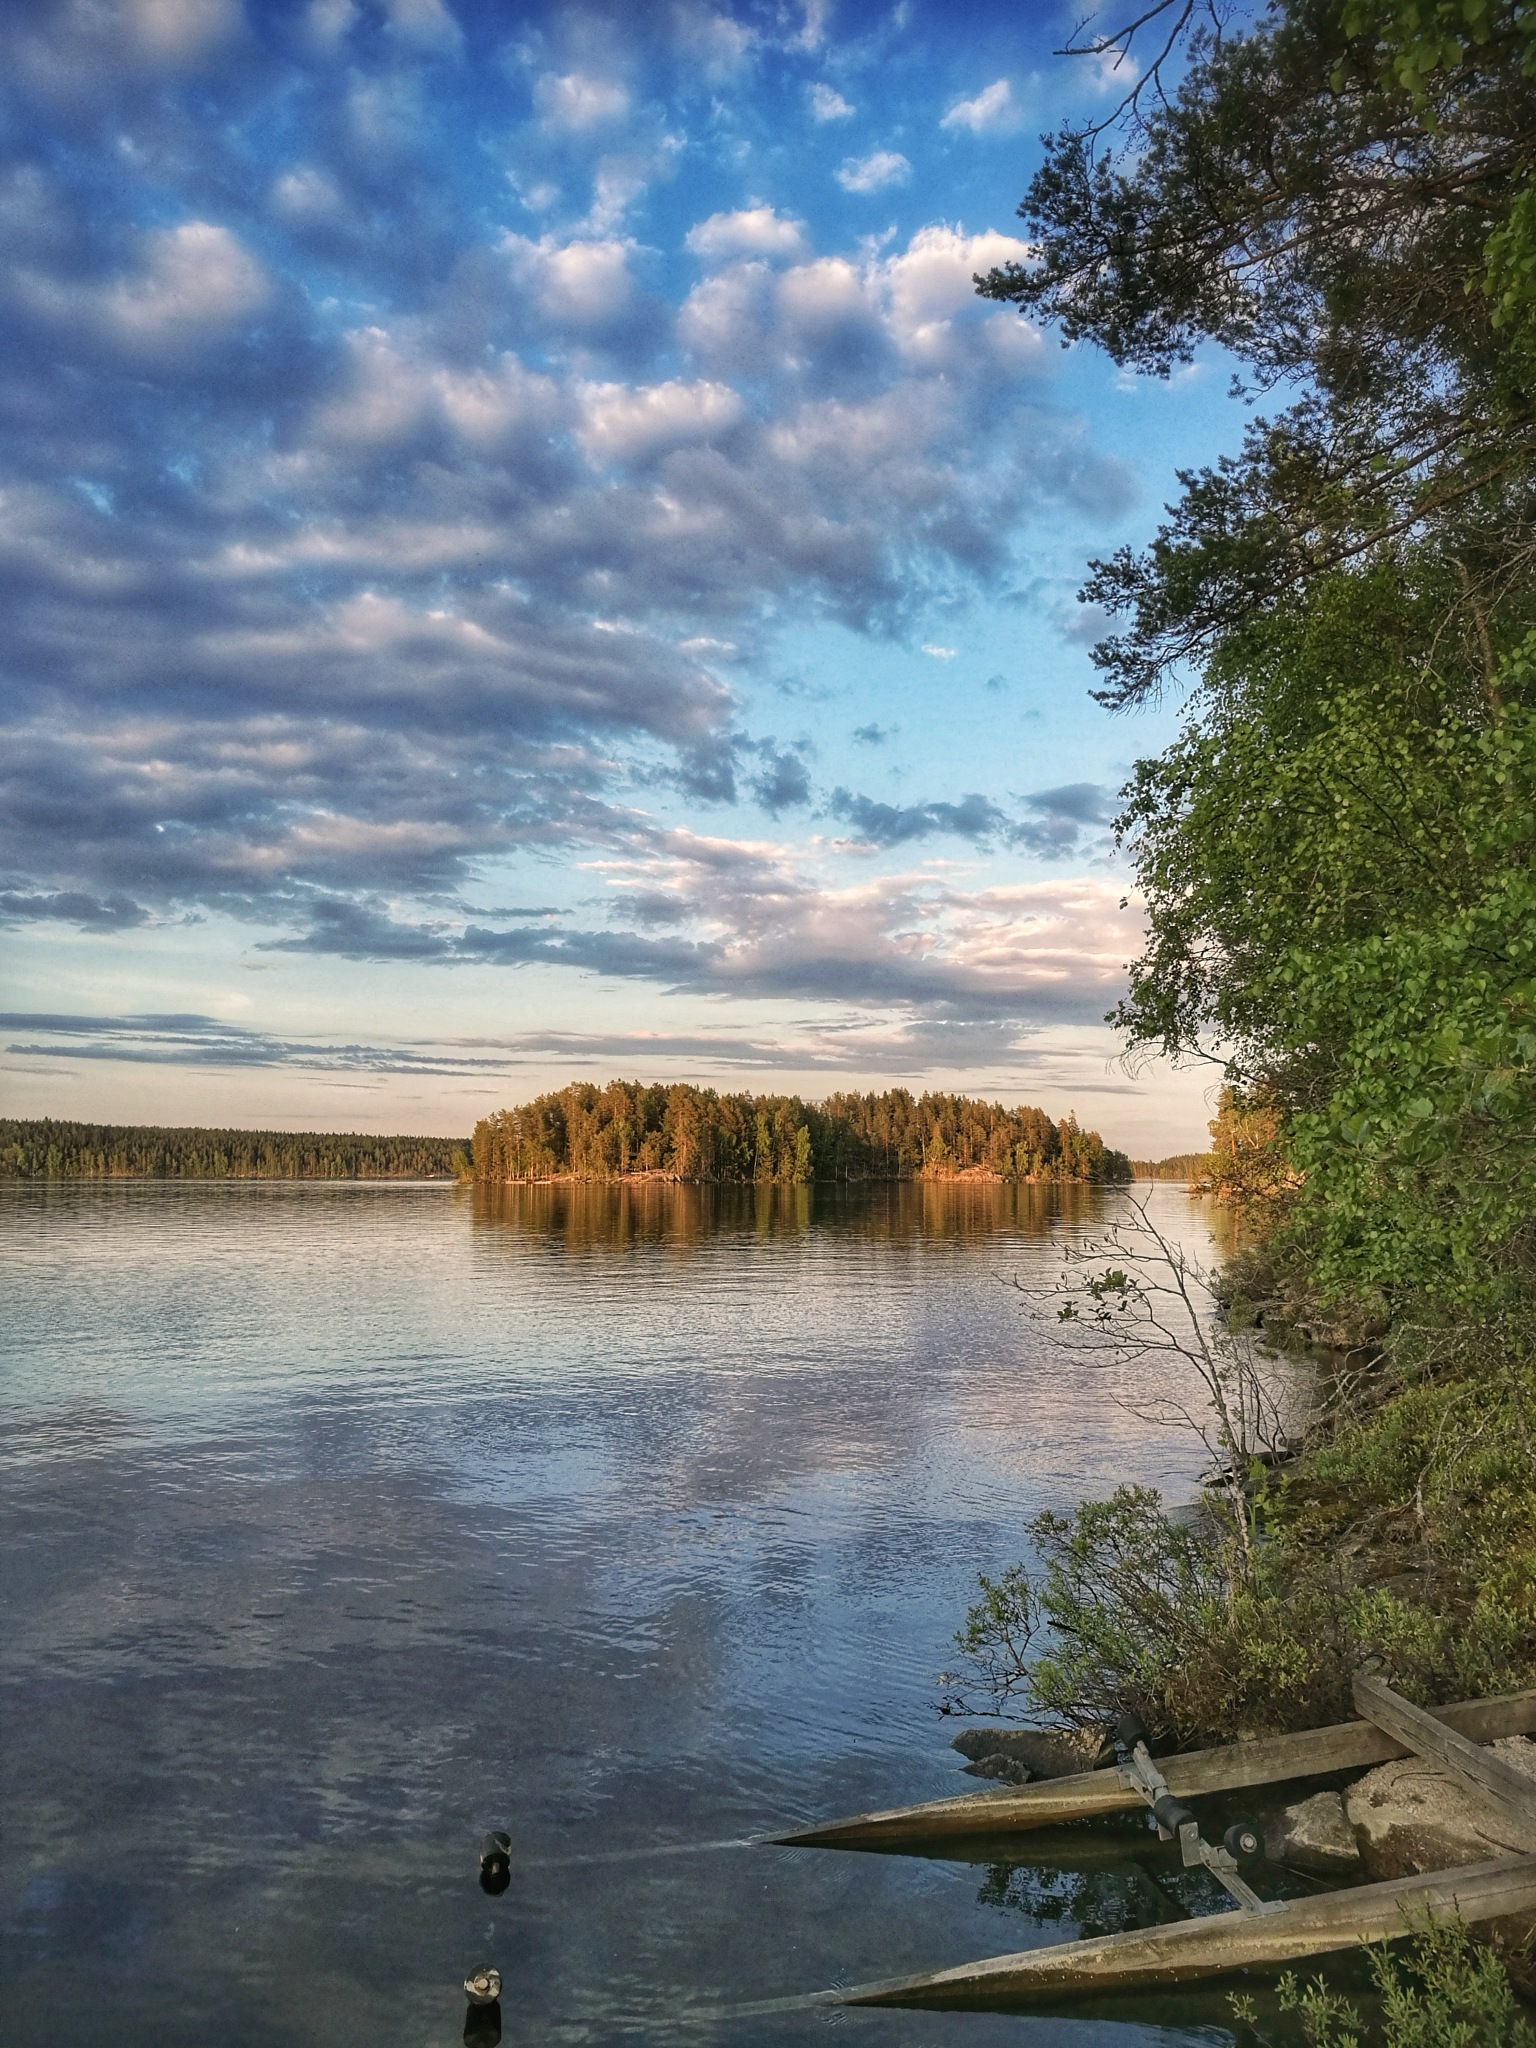 Summer clouds by lake Puula by Sini Paavonsalo